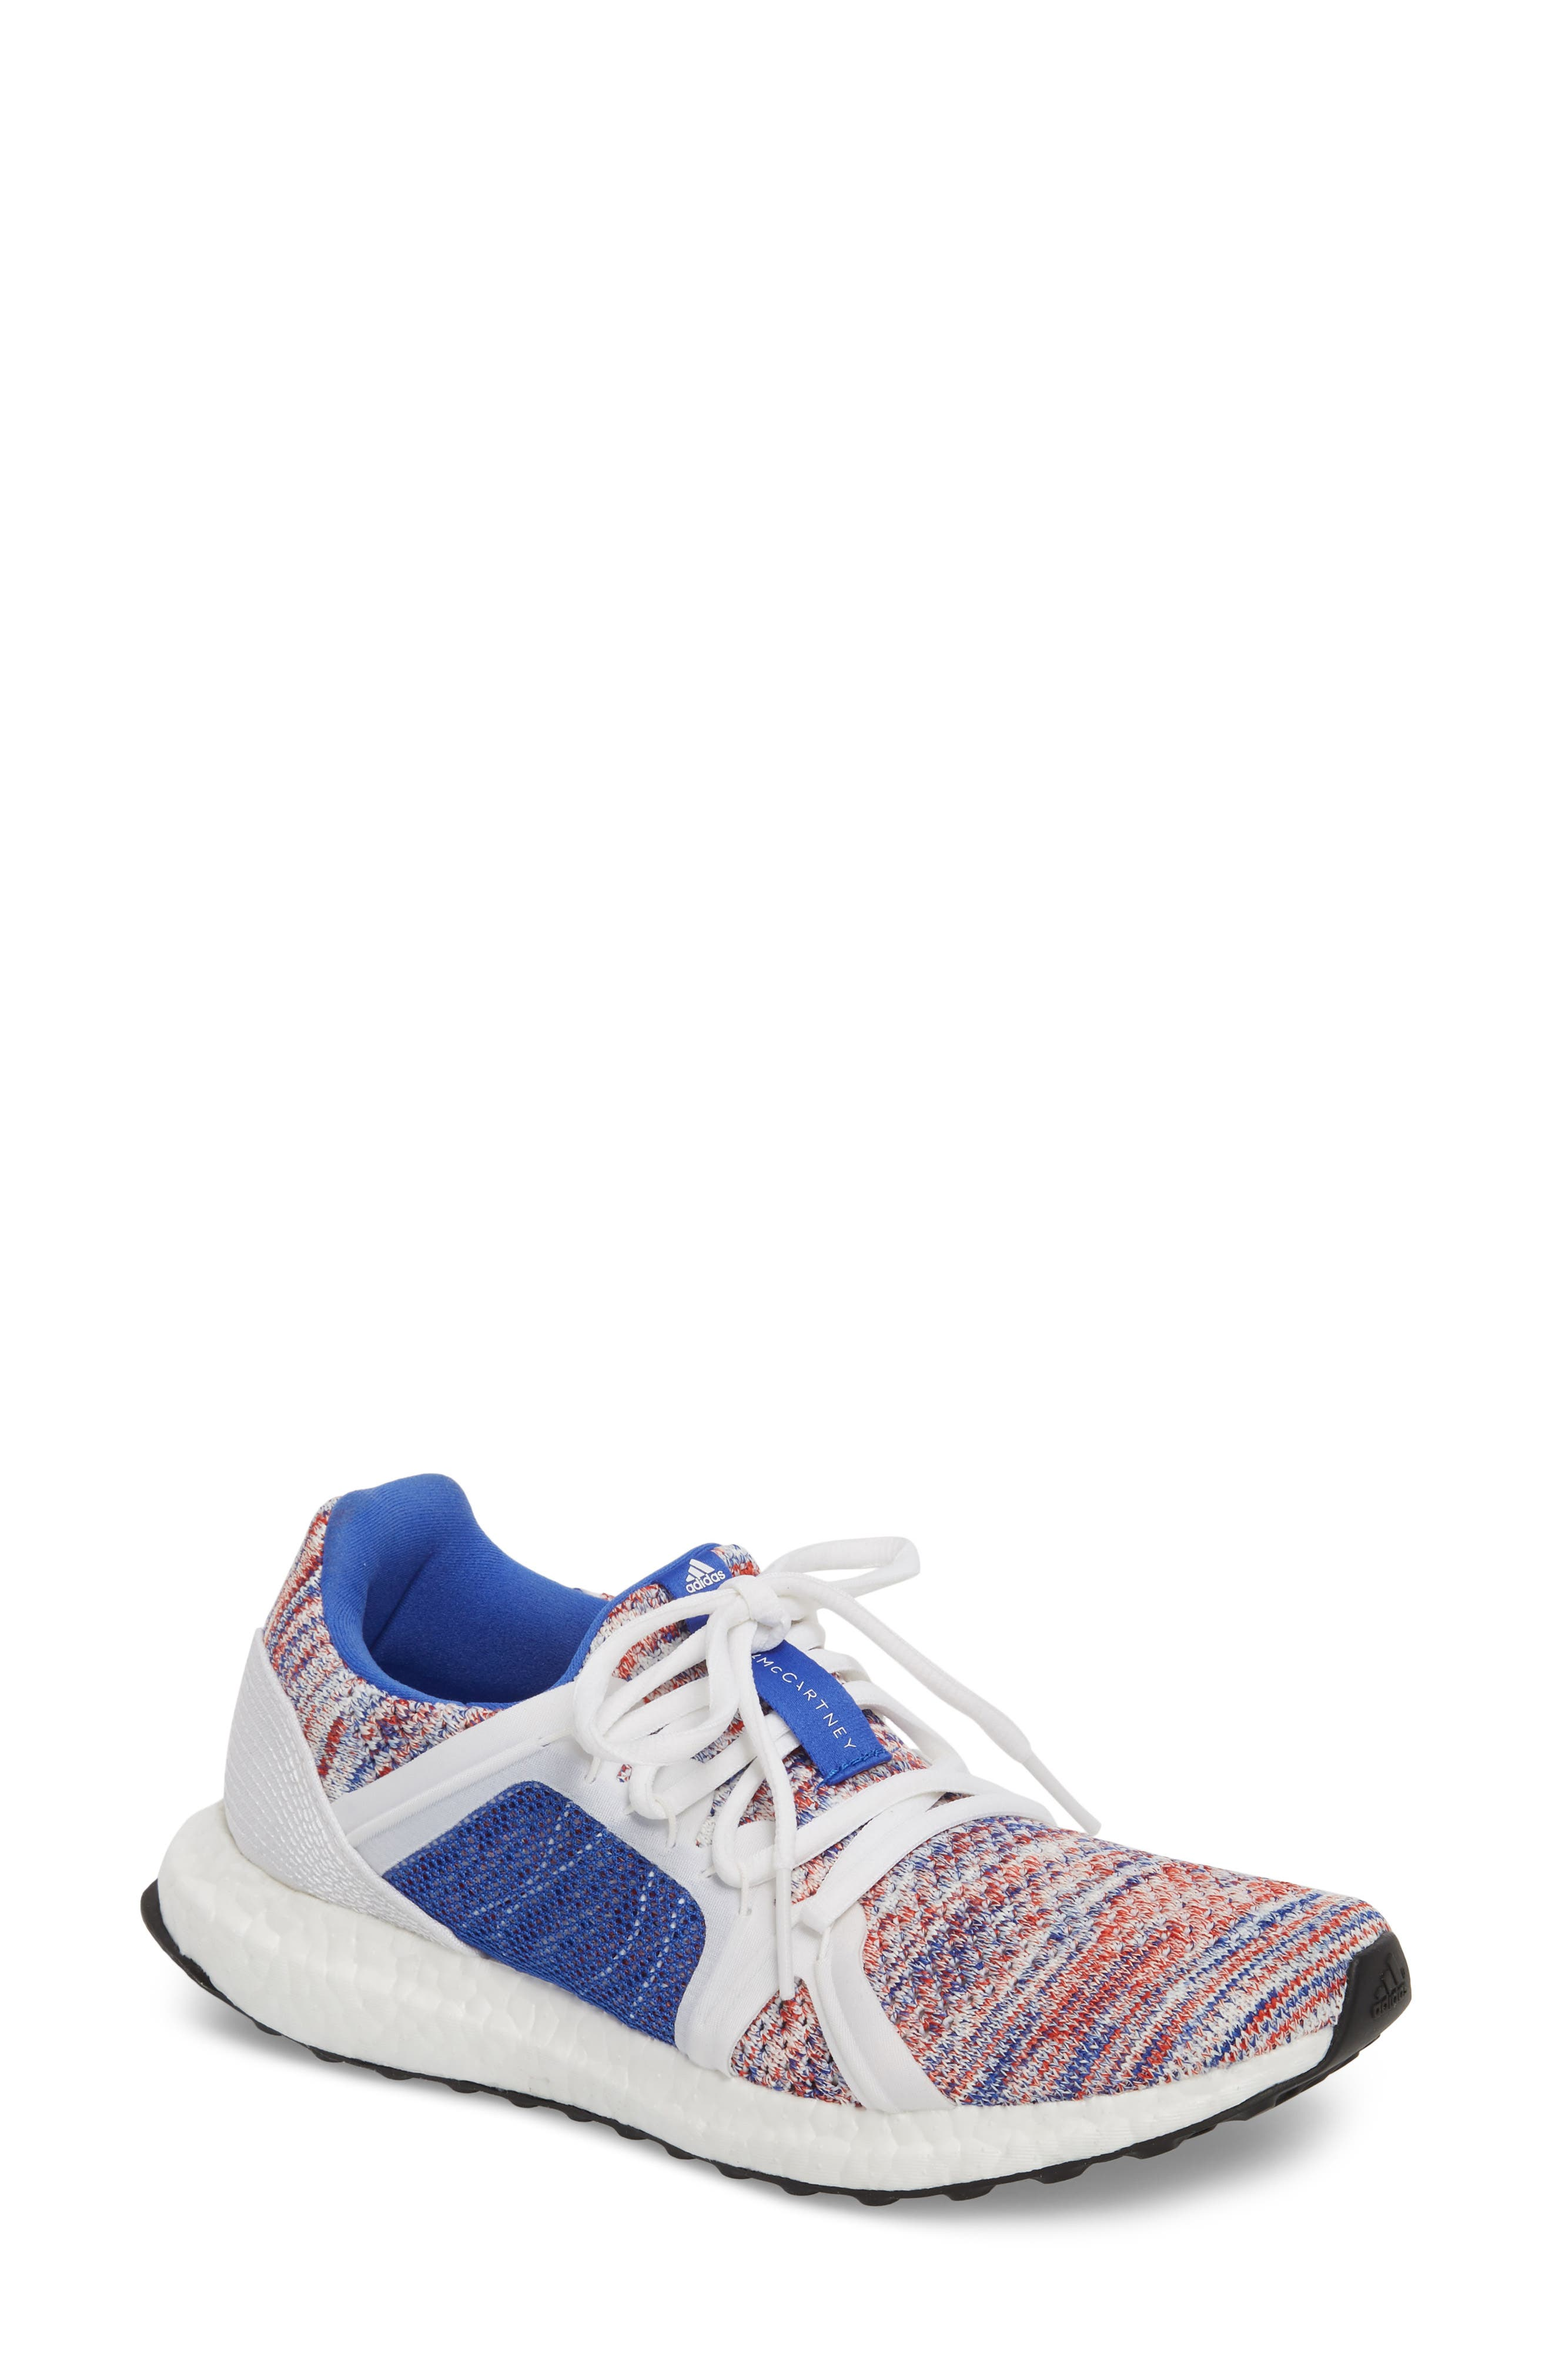 by Stella McCartney UltraBoost x Parley Running Shoe,                             Main thumbnail 5, color,